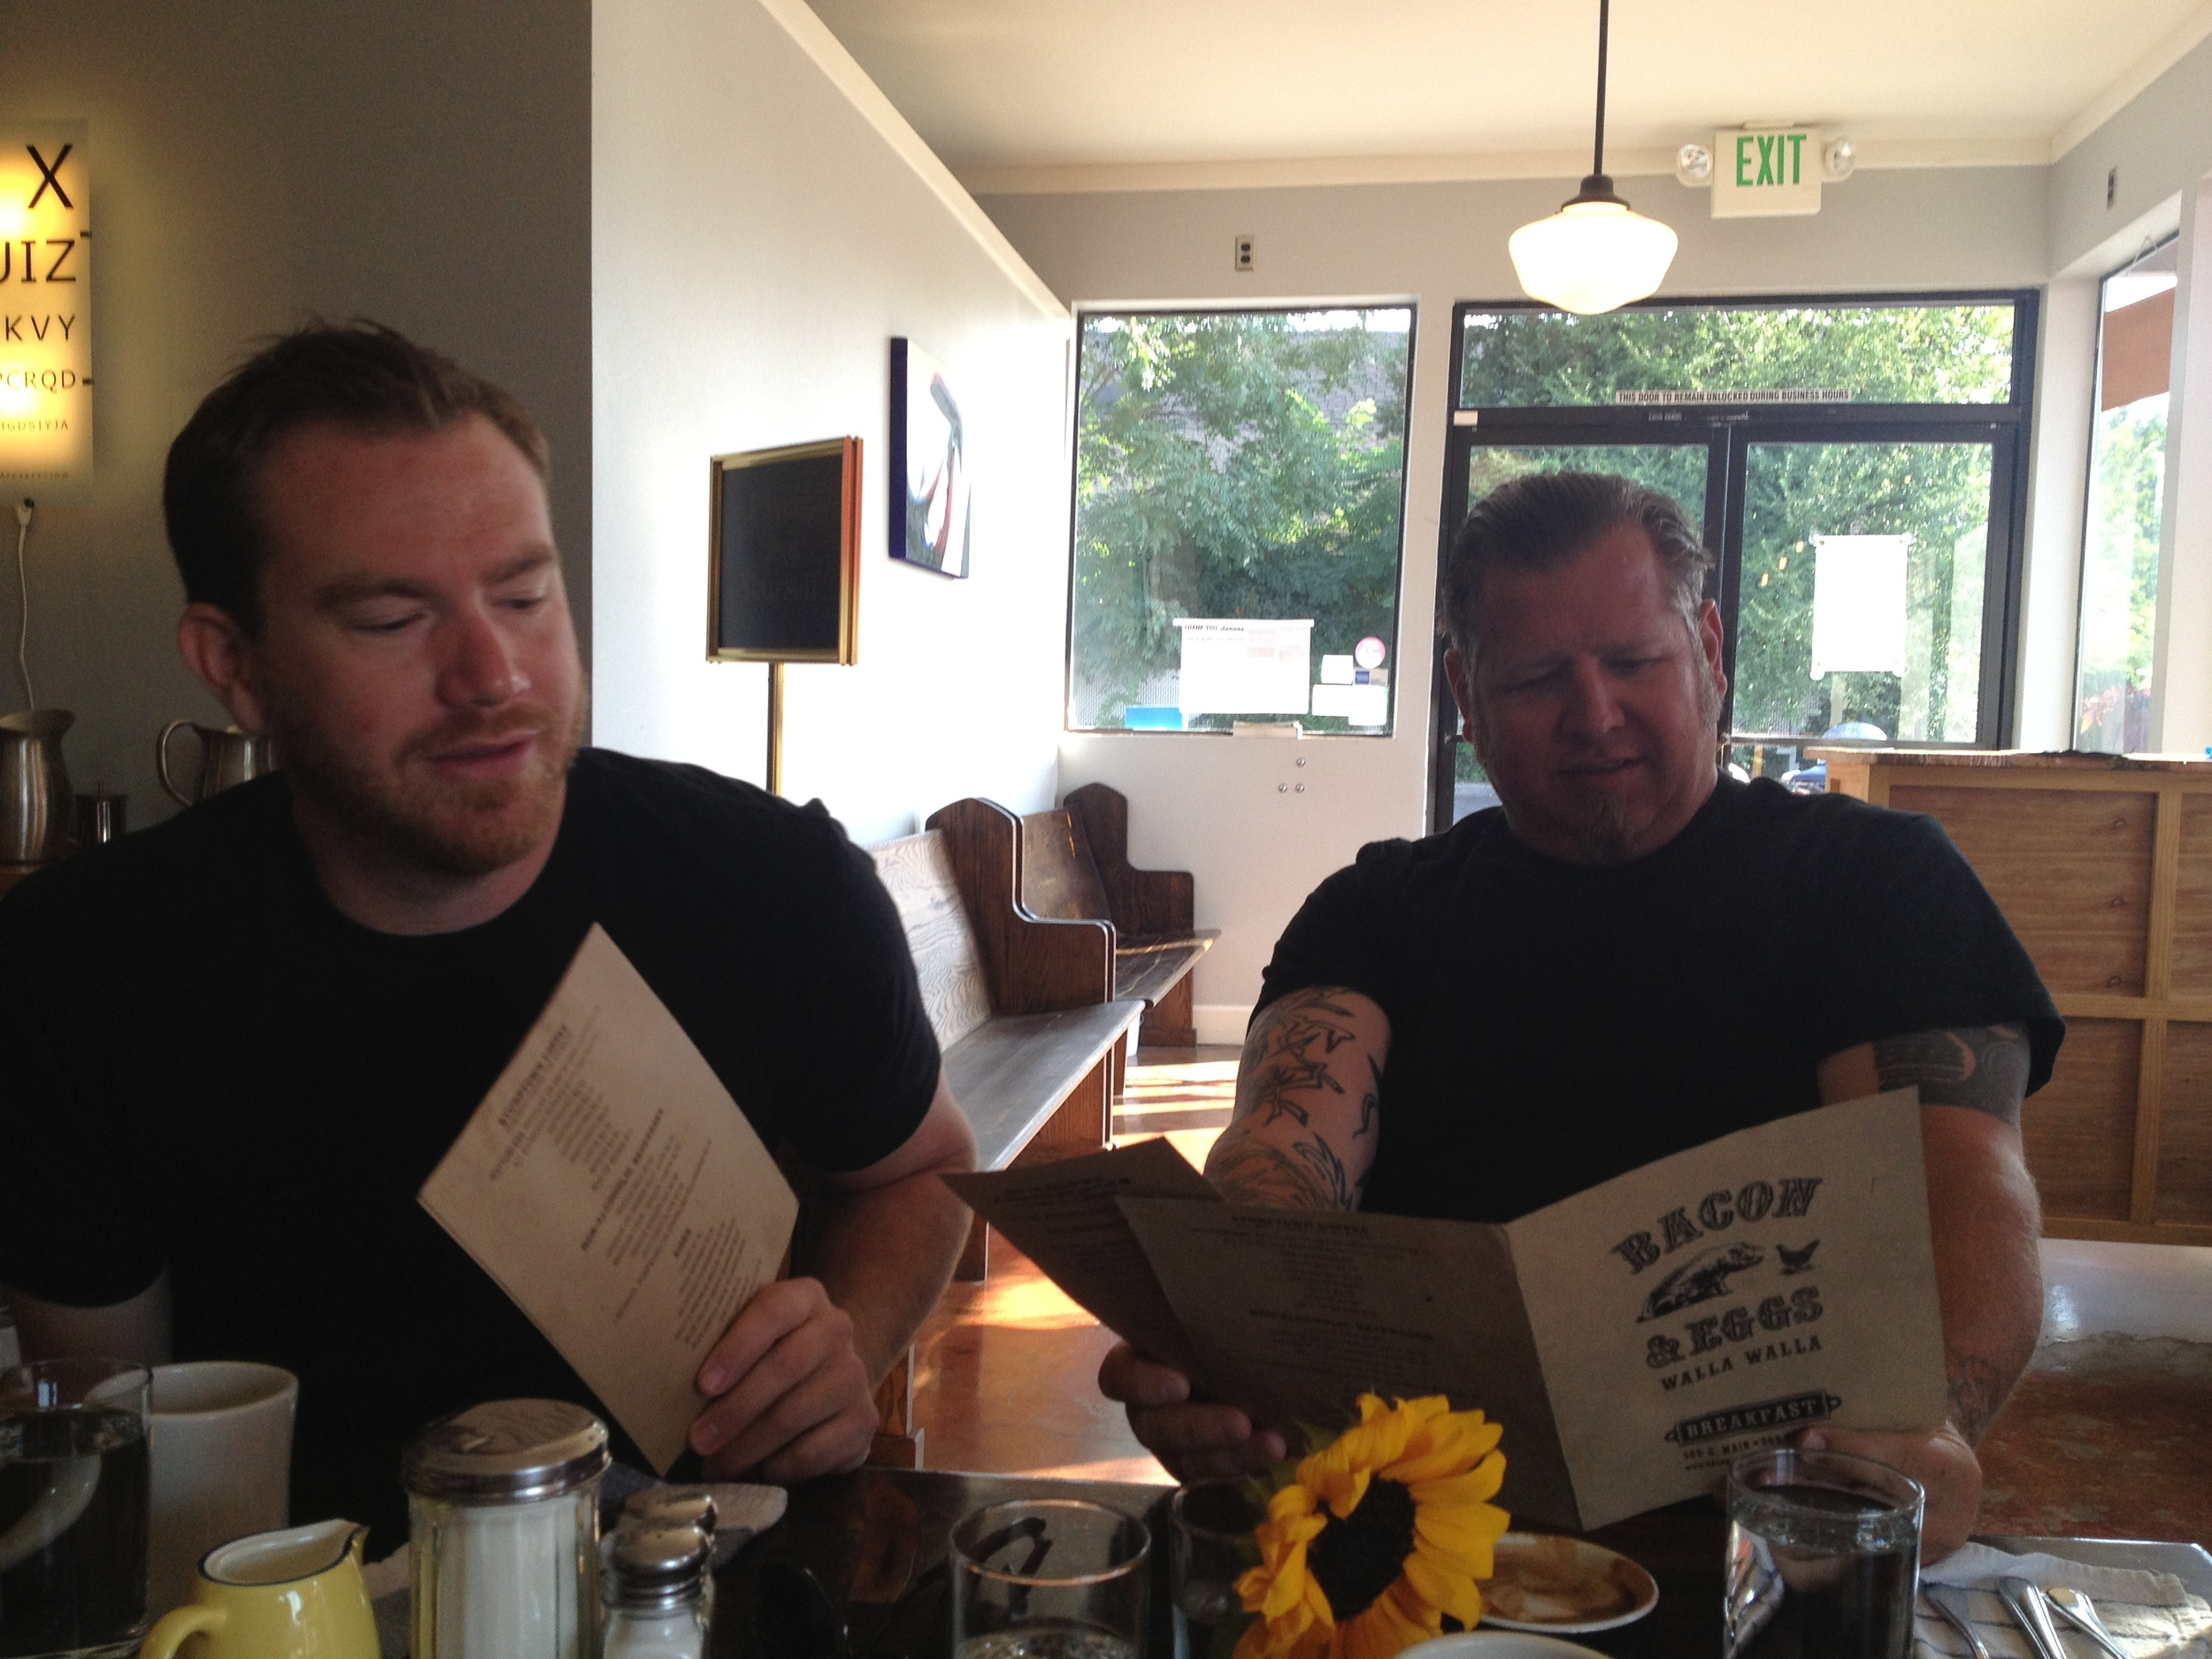 Breakfast and cocktails with winemakers Andrew Latta and Brennon Leighton at Bacon and Eggs. A couple of good dudes.